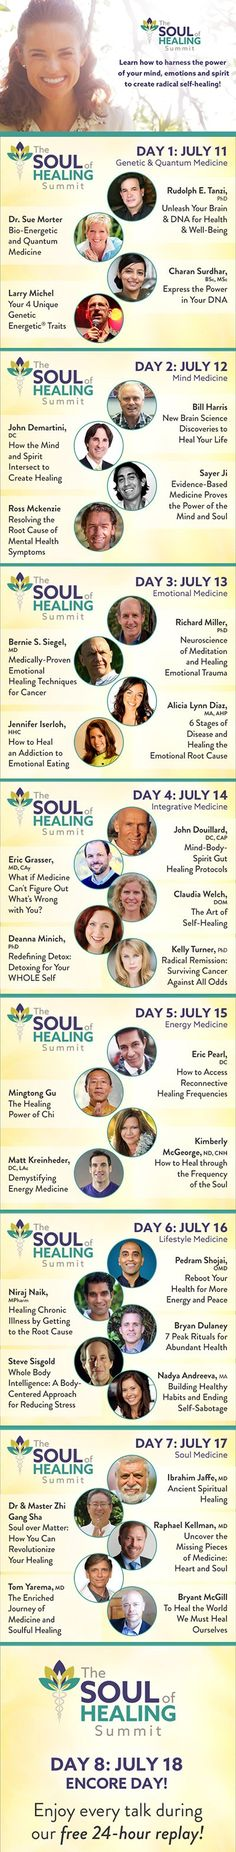 Soul of Healing Summit: Harness the power of mind, emotions and spirit for self-healing! Starts Monday, July 11th - register today!